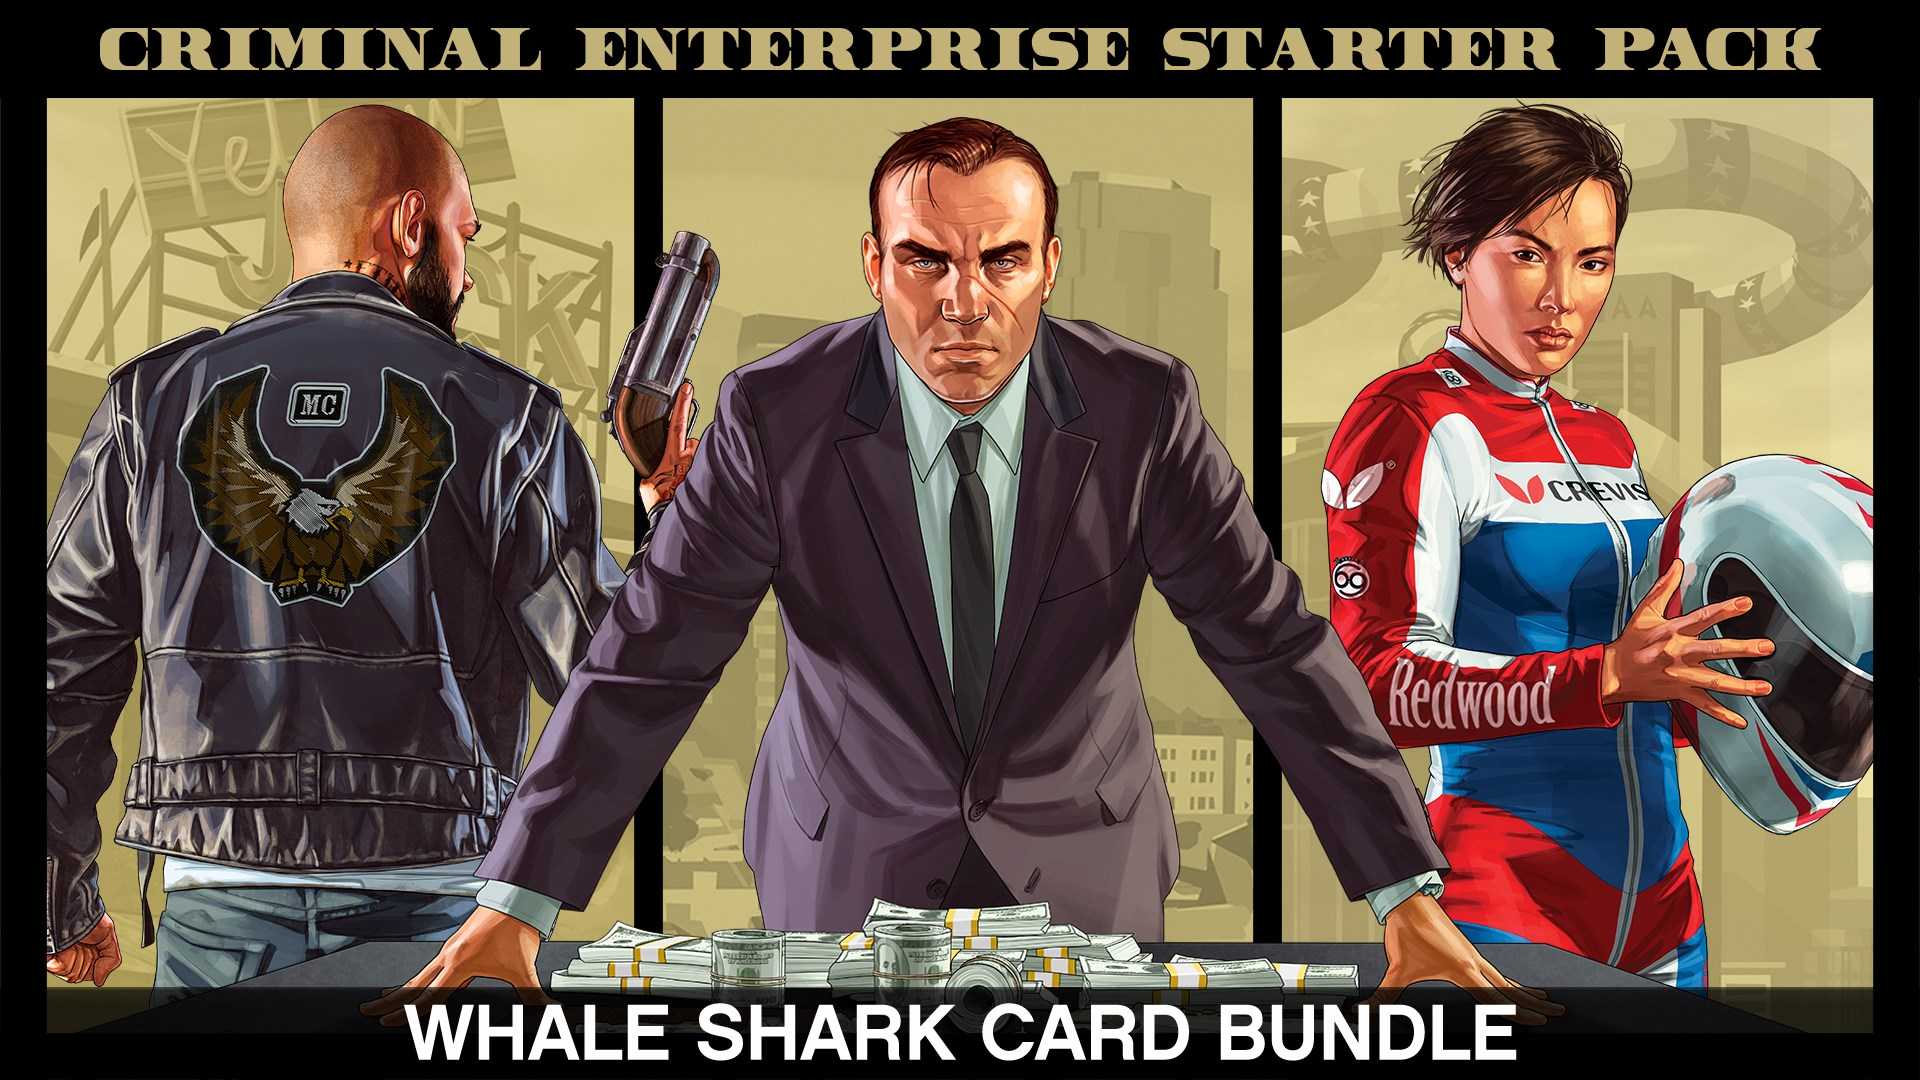 Bundle Pack d'entrée dans le monde criminel & paquet de dollars Whale Shark